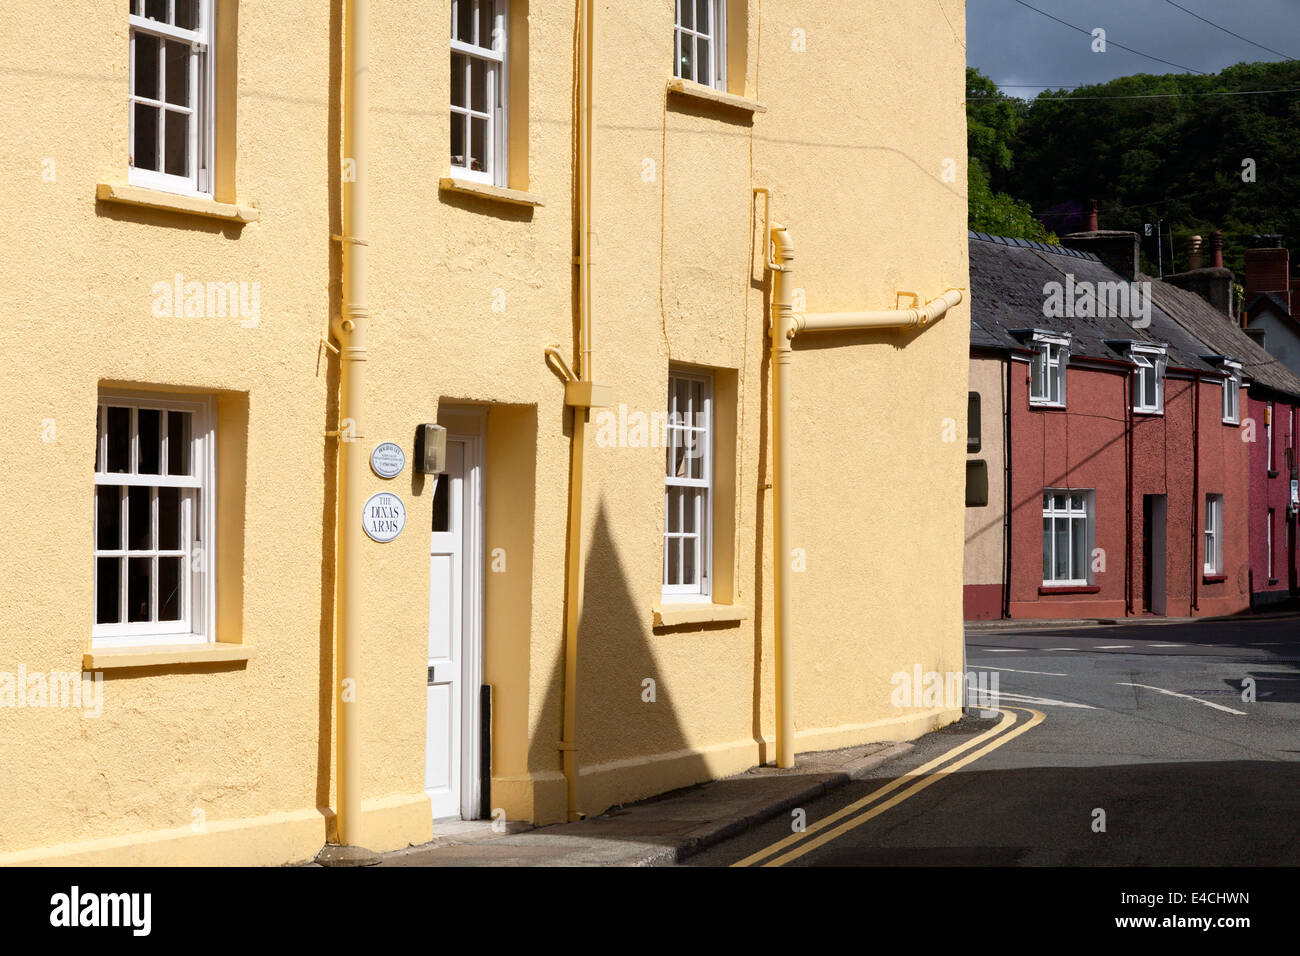 Houses in Lower Fishguard, Pembrokeshire - Stock Image